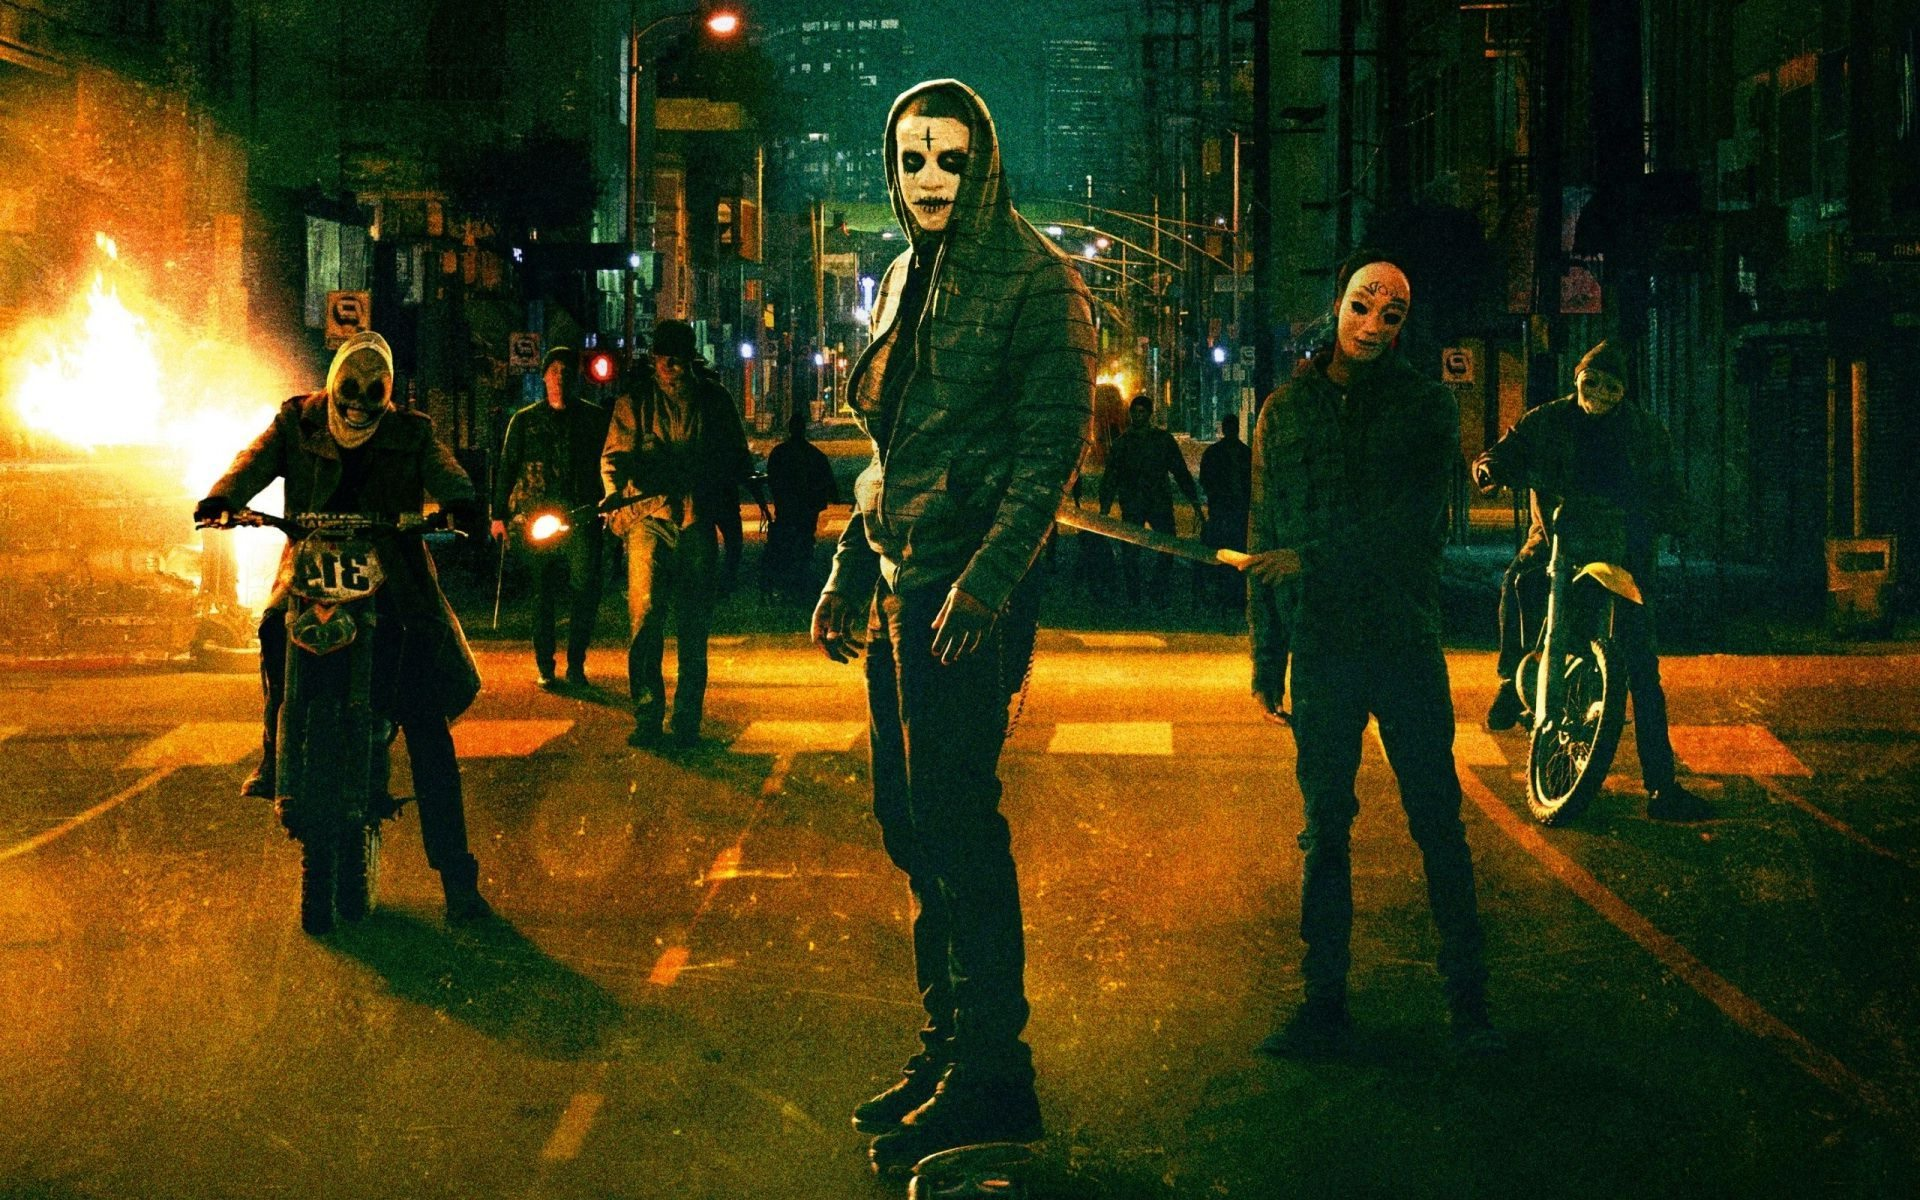 our purge rewatch continues with the punisher esque \u0027the Frank Grillo Movies